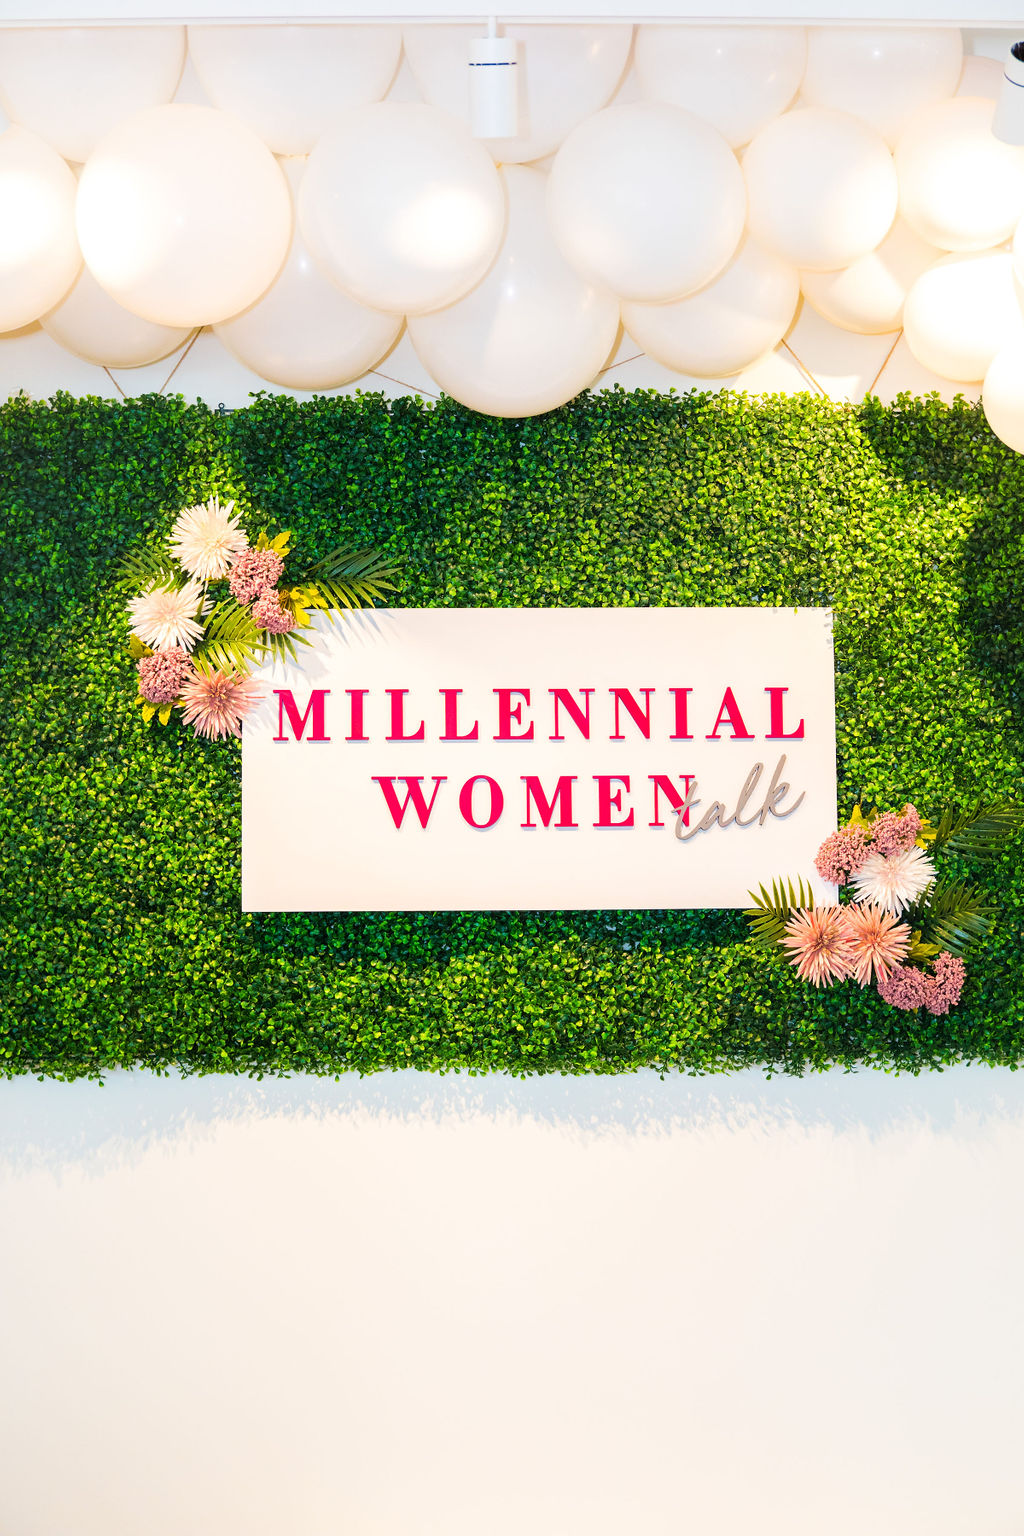 3 Unexpected Lessons From The Millennial Women x Honeypot Talk Tour